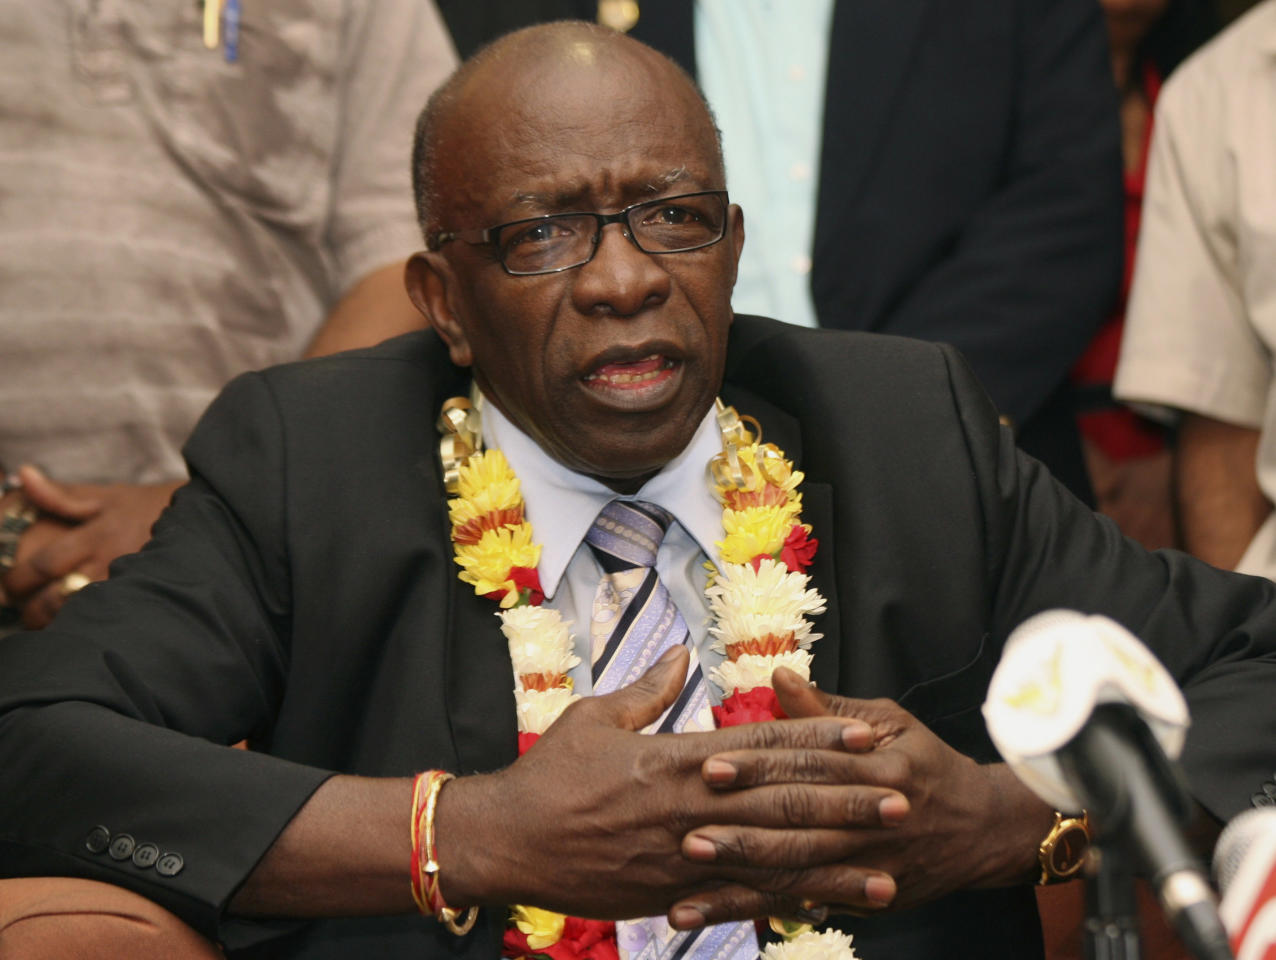 FILE - In this June 2, 2011 file photo, suspended FIFA executive Jack Warner gestures during a news conference at the airport in Port-of-Spain, Trinidad and Tobago. Prosecutors revealed new details of alleged bribes paid to FIFA executive committee members to gain their votes for Qatar to host the 2022 World Cup. An indictment unsealed Monday, April 6, 2020 in U.S. District Court in Brooklyn says Jack Warner of Trinidad and Tobago, president of the North and Central American and Caribbean governing body CONCACAF, received $5 million in bribes to vote for Russia to host in 2018 from 10 different shell companies that included entities in Anguilla, Cyprus and the British Virgin Islands, the indictment alleged. (AP Photo/Shirley Bahadur, File)